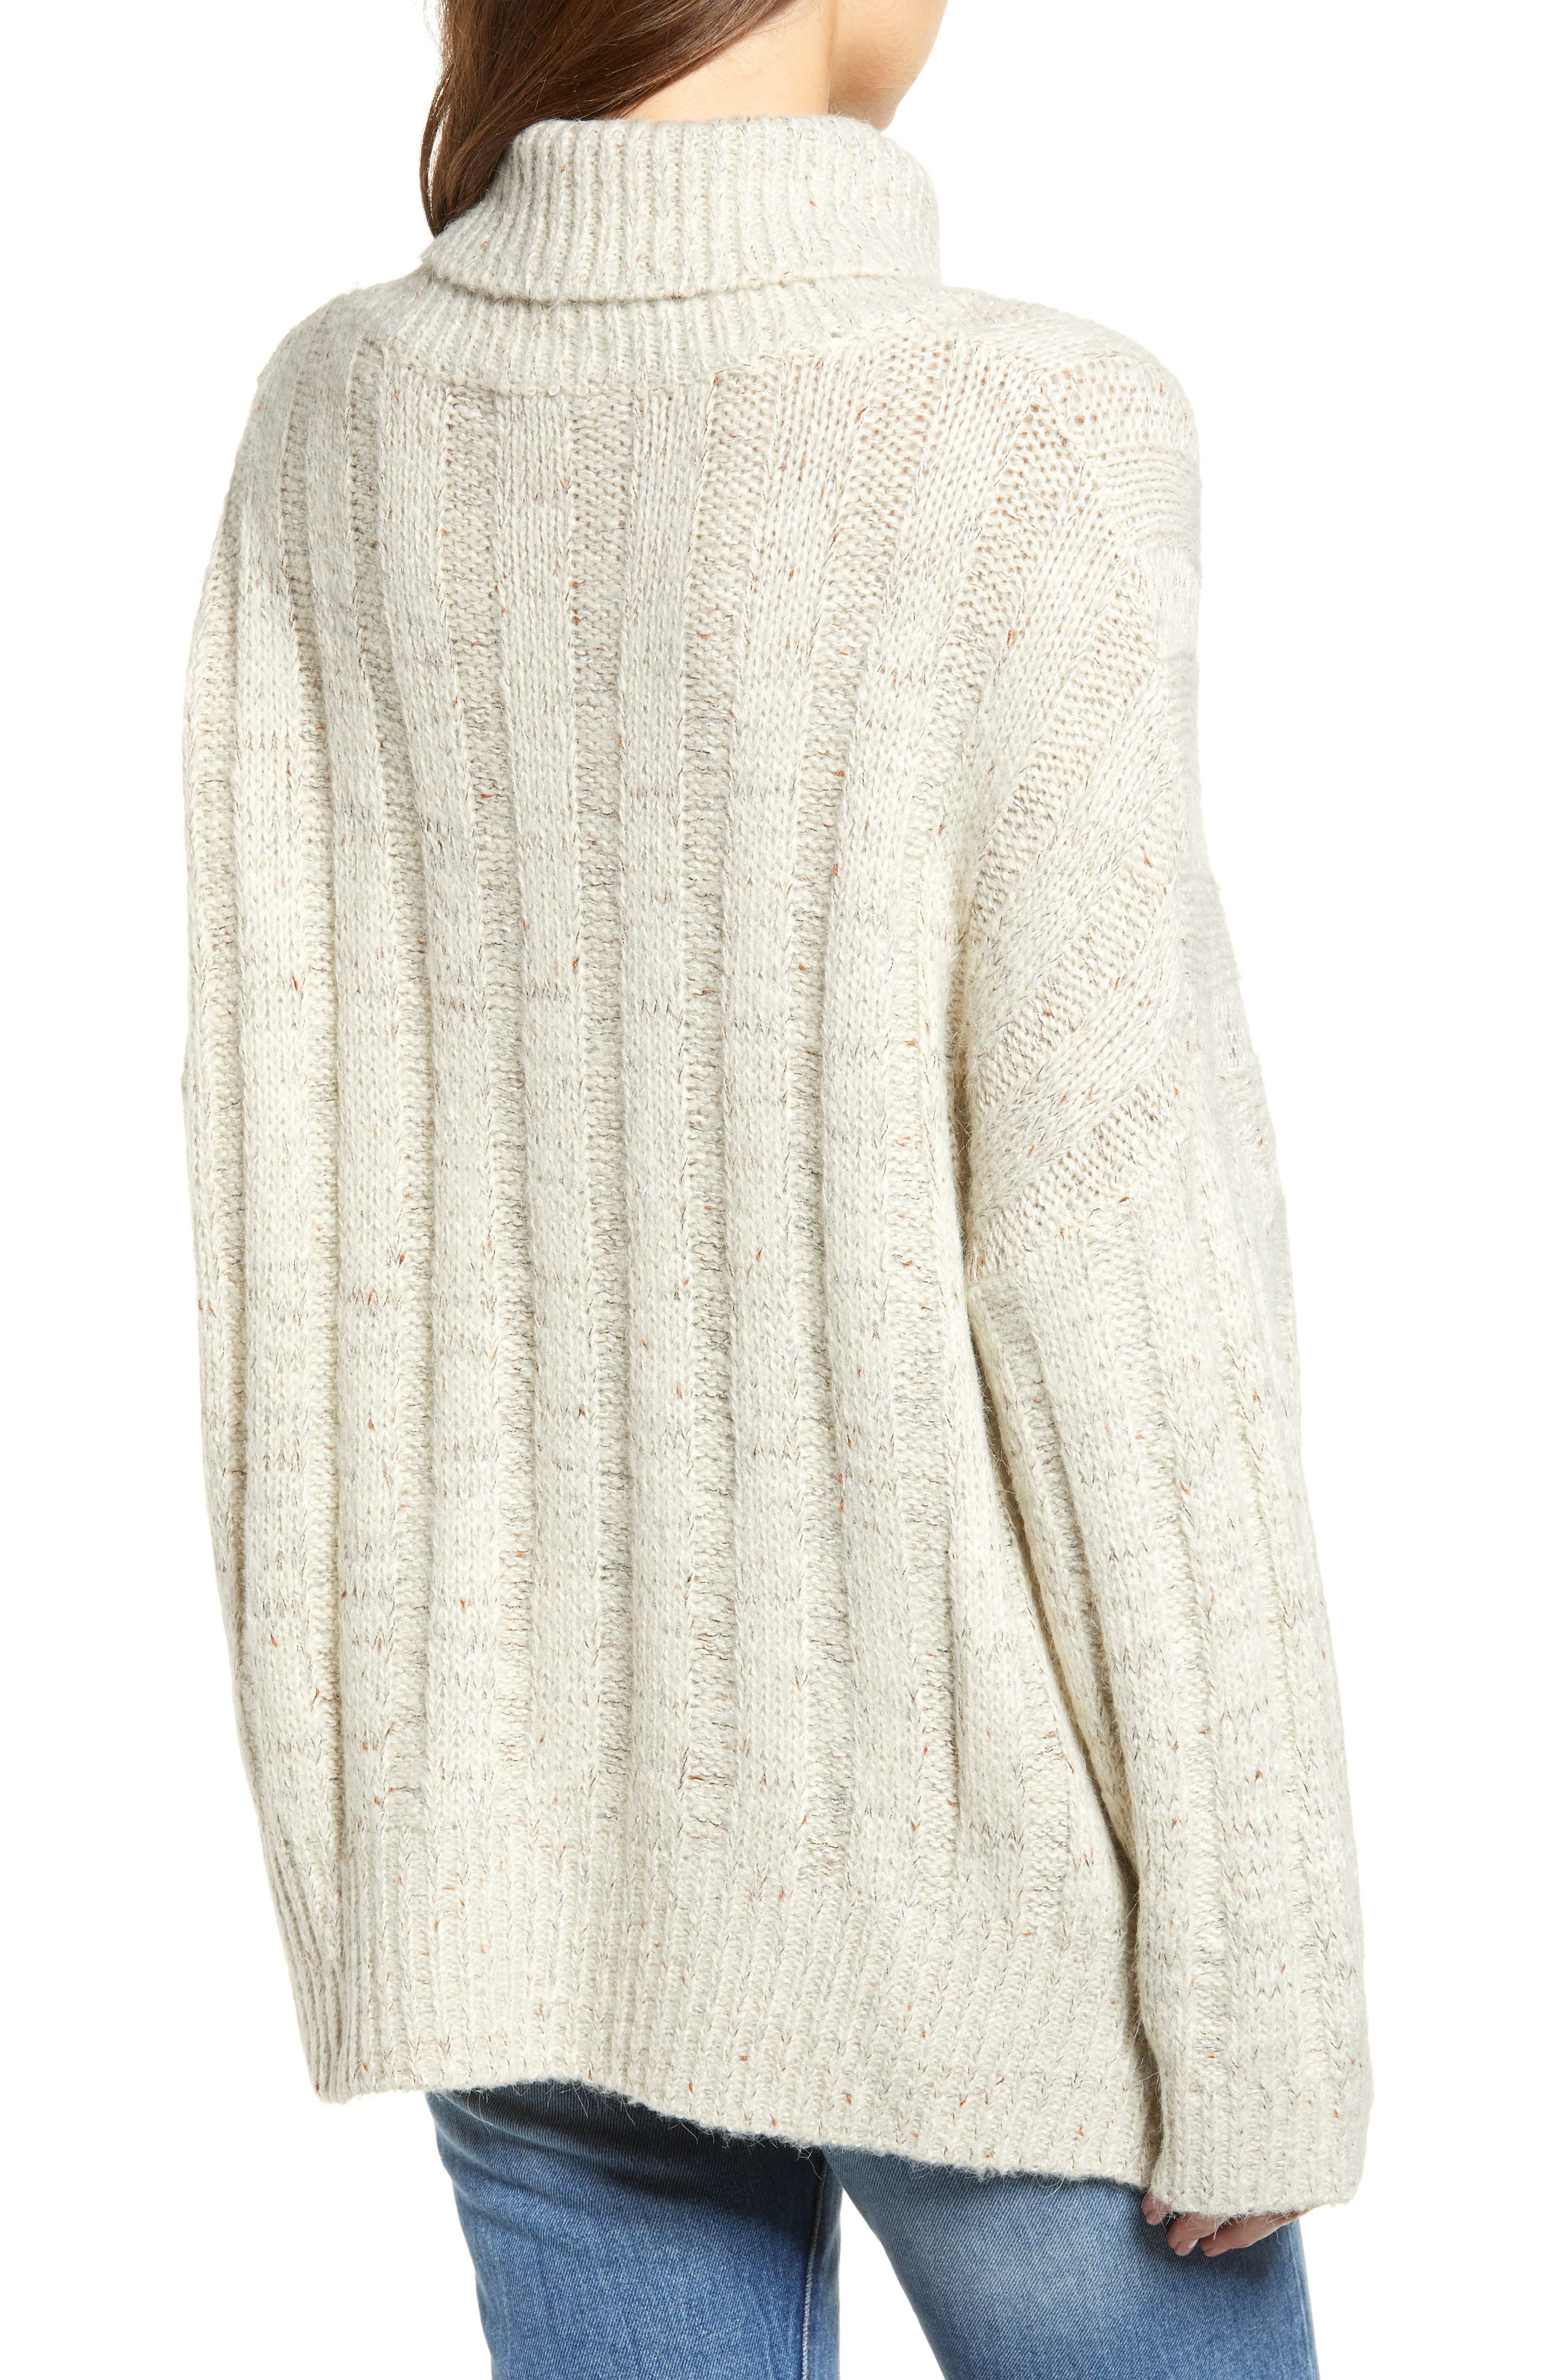 Oversized Turtleneck Sweater,                             Alternate thumbnail 2, color,                             250